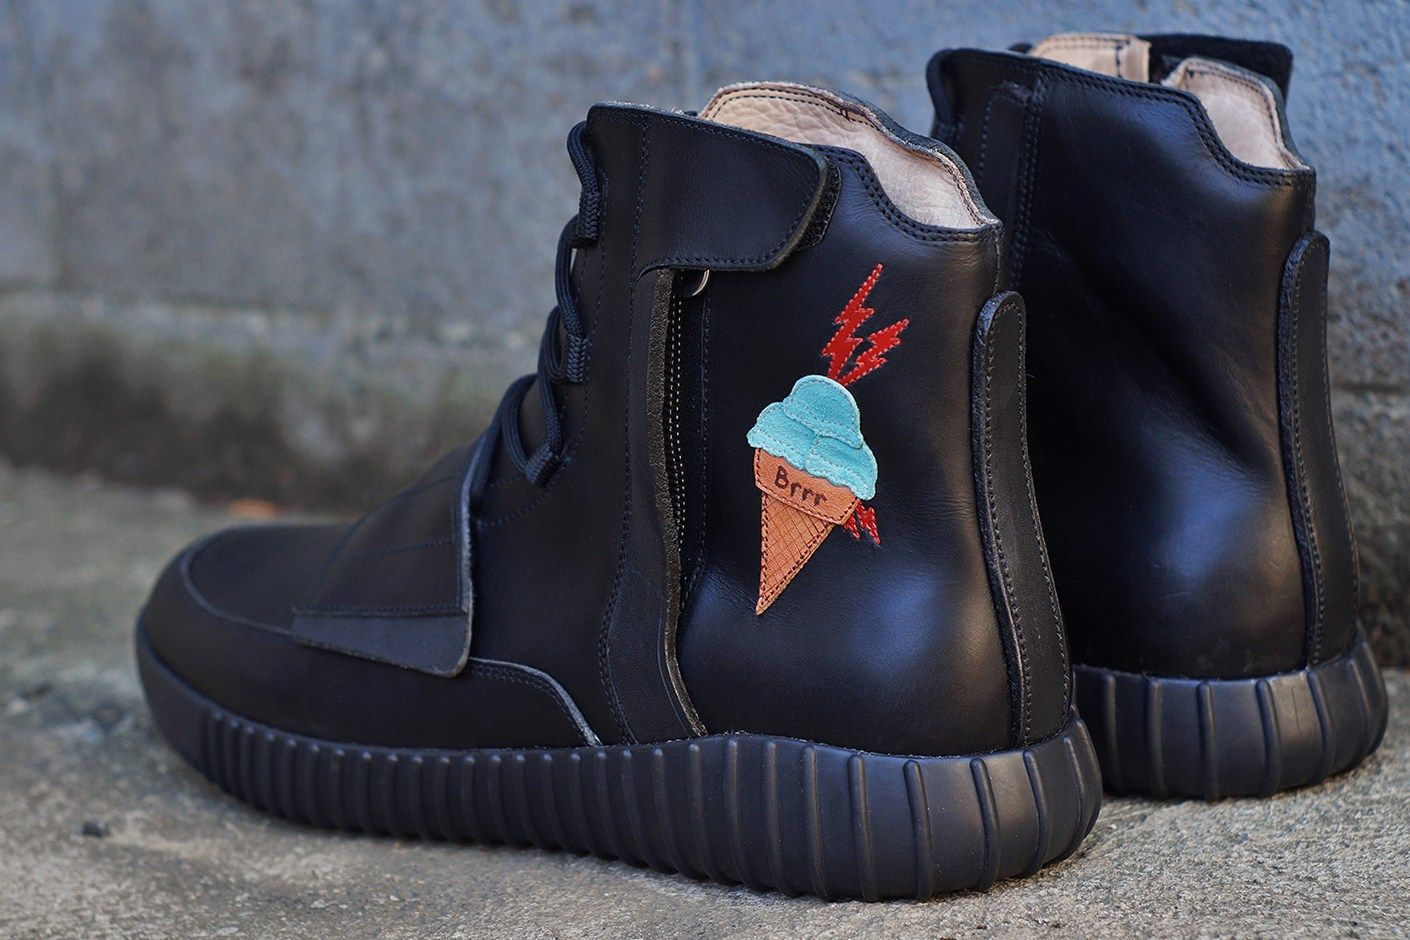 18ef9aa7b843 JBF Customs Yeezy BOOST 750 Ice Cream Decor Gucci Mane Black Leather Water  Resistance Veg Tanned Leather Mint Suede